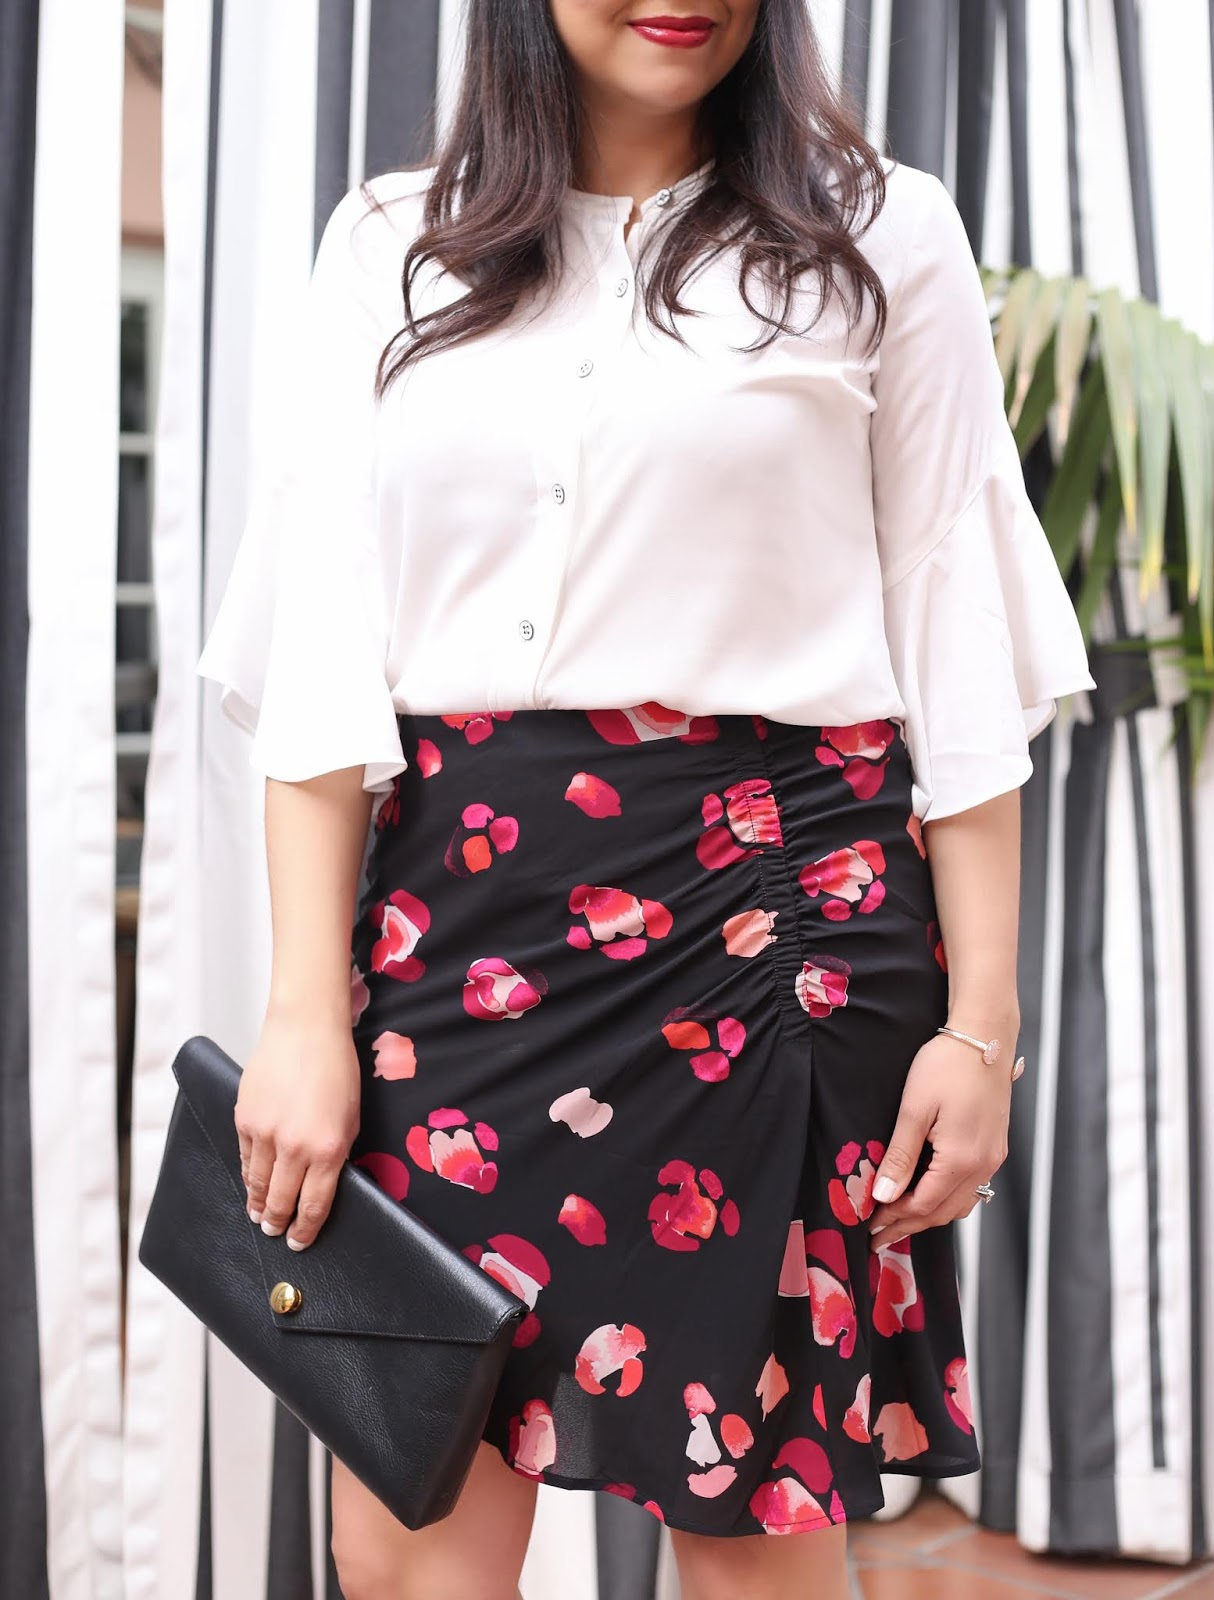 cabi petal skirt, cabi float blouse, white blouse with frilly sleeves, linel ellis clutch